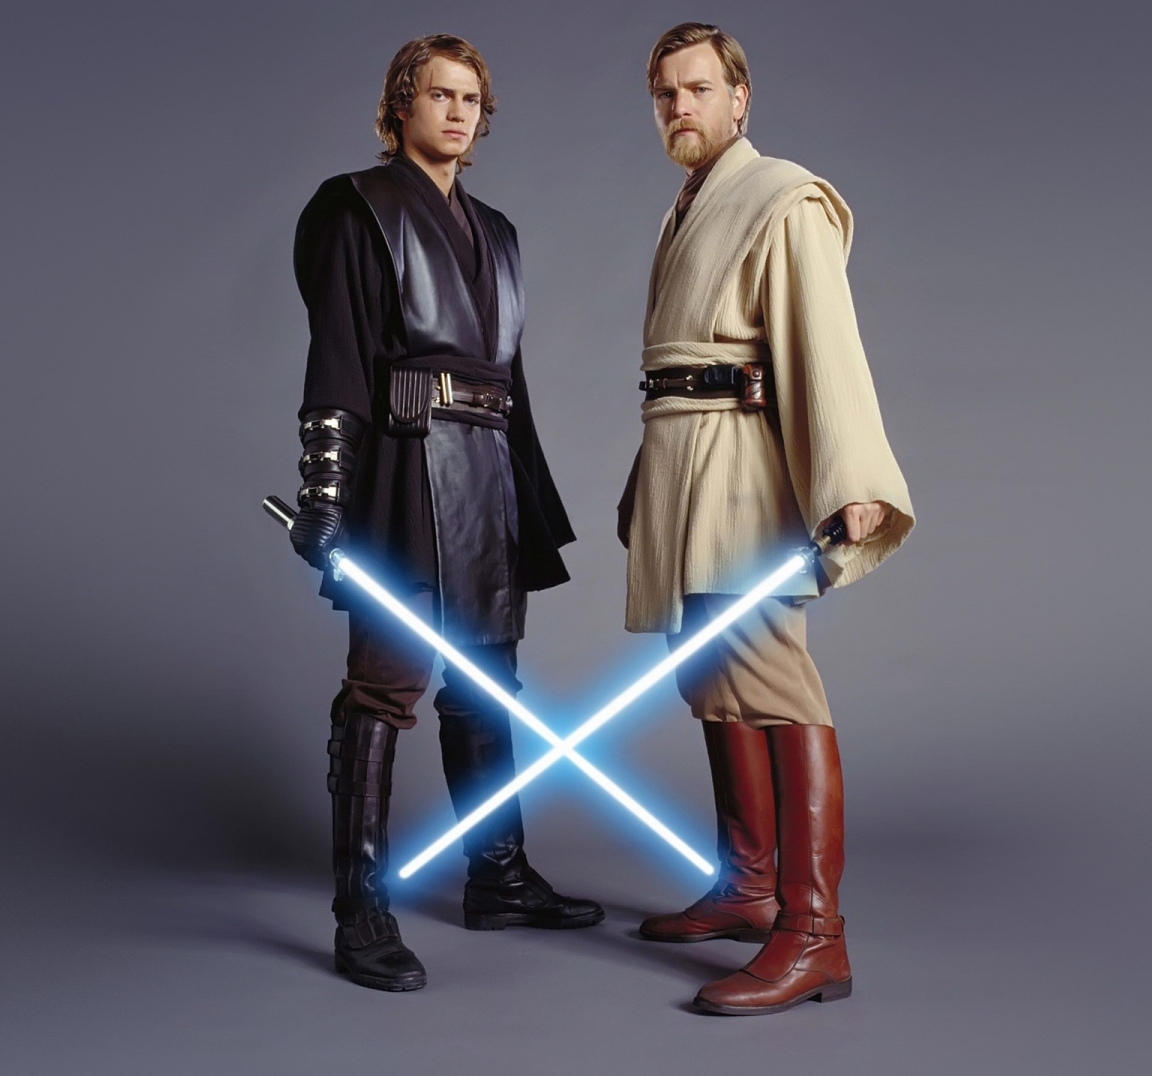 「STAR WARS EPISODE III: REVENGE OF THE SITH」の画像検索結果